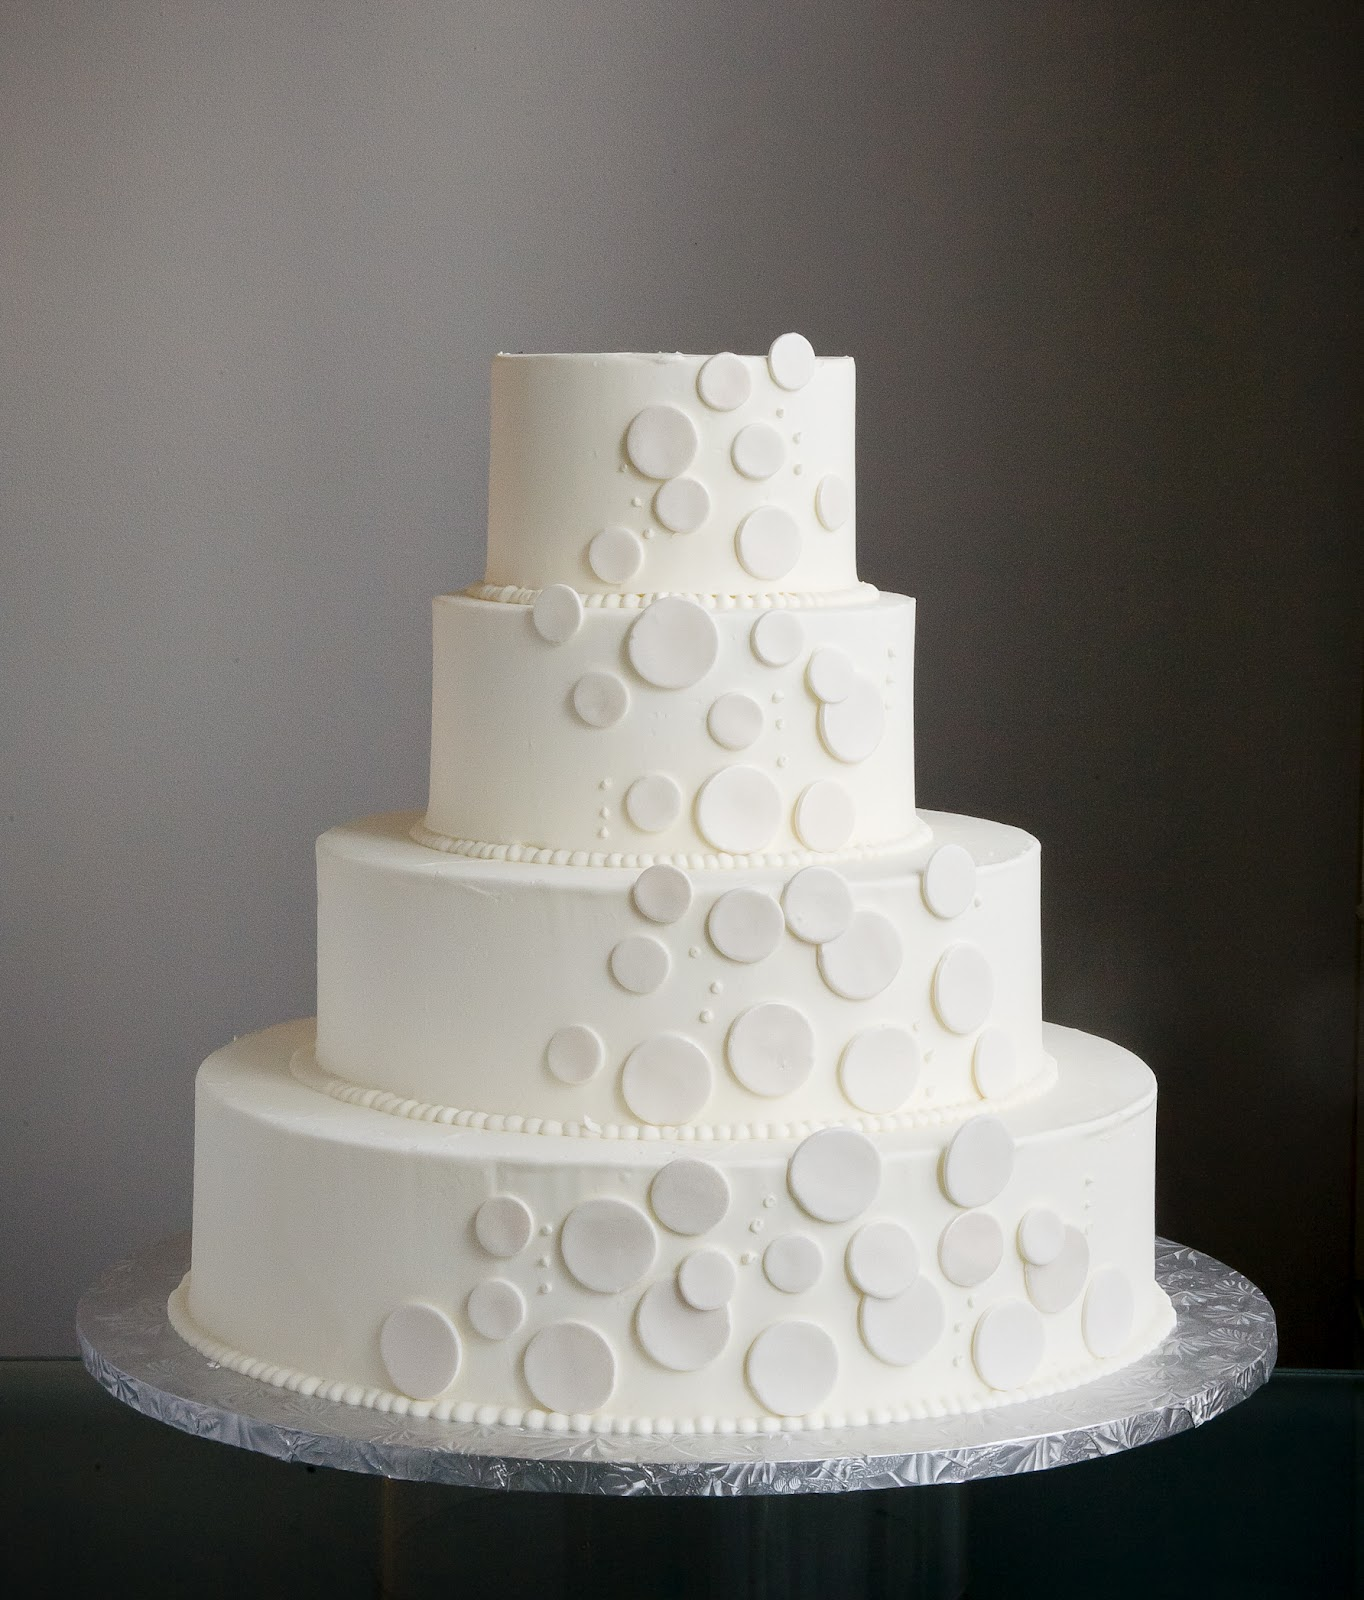 A Simple Cake Buttercream or Fondant Which is Best For A